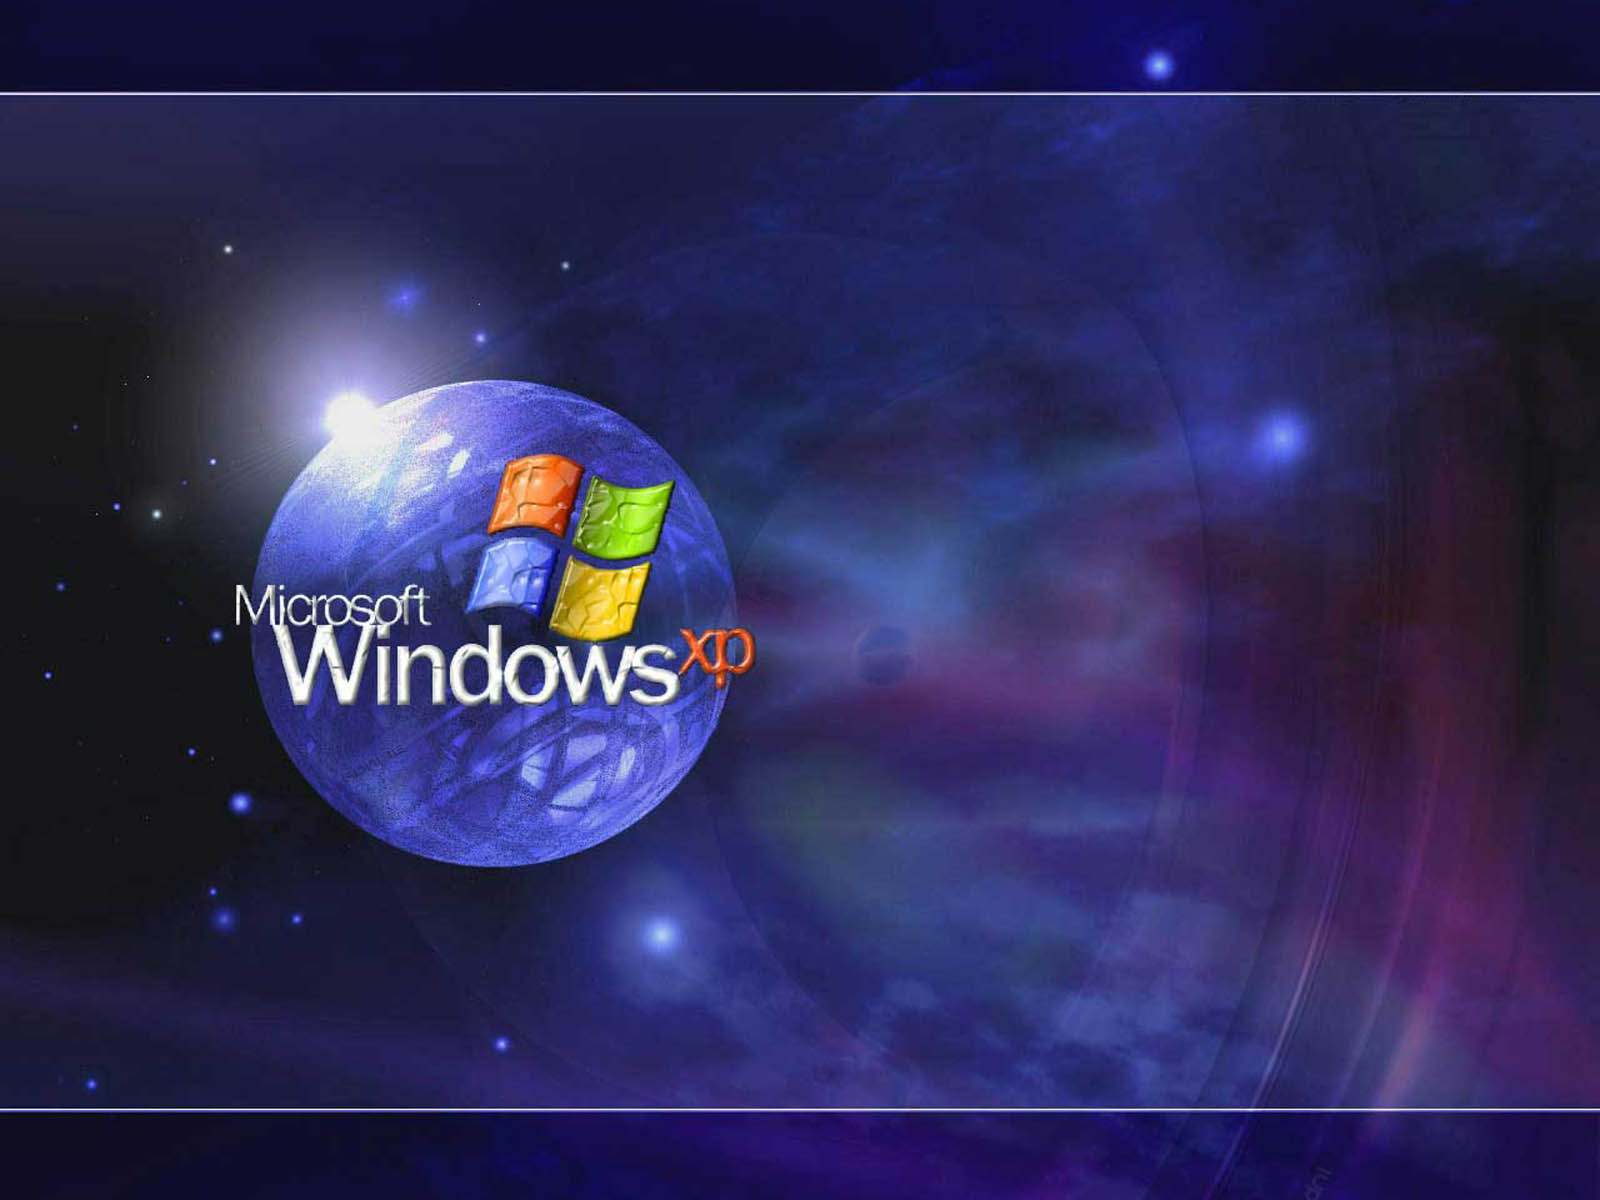 Wallpapers windows xp wallpapers for Window background